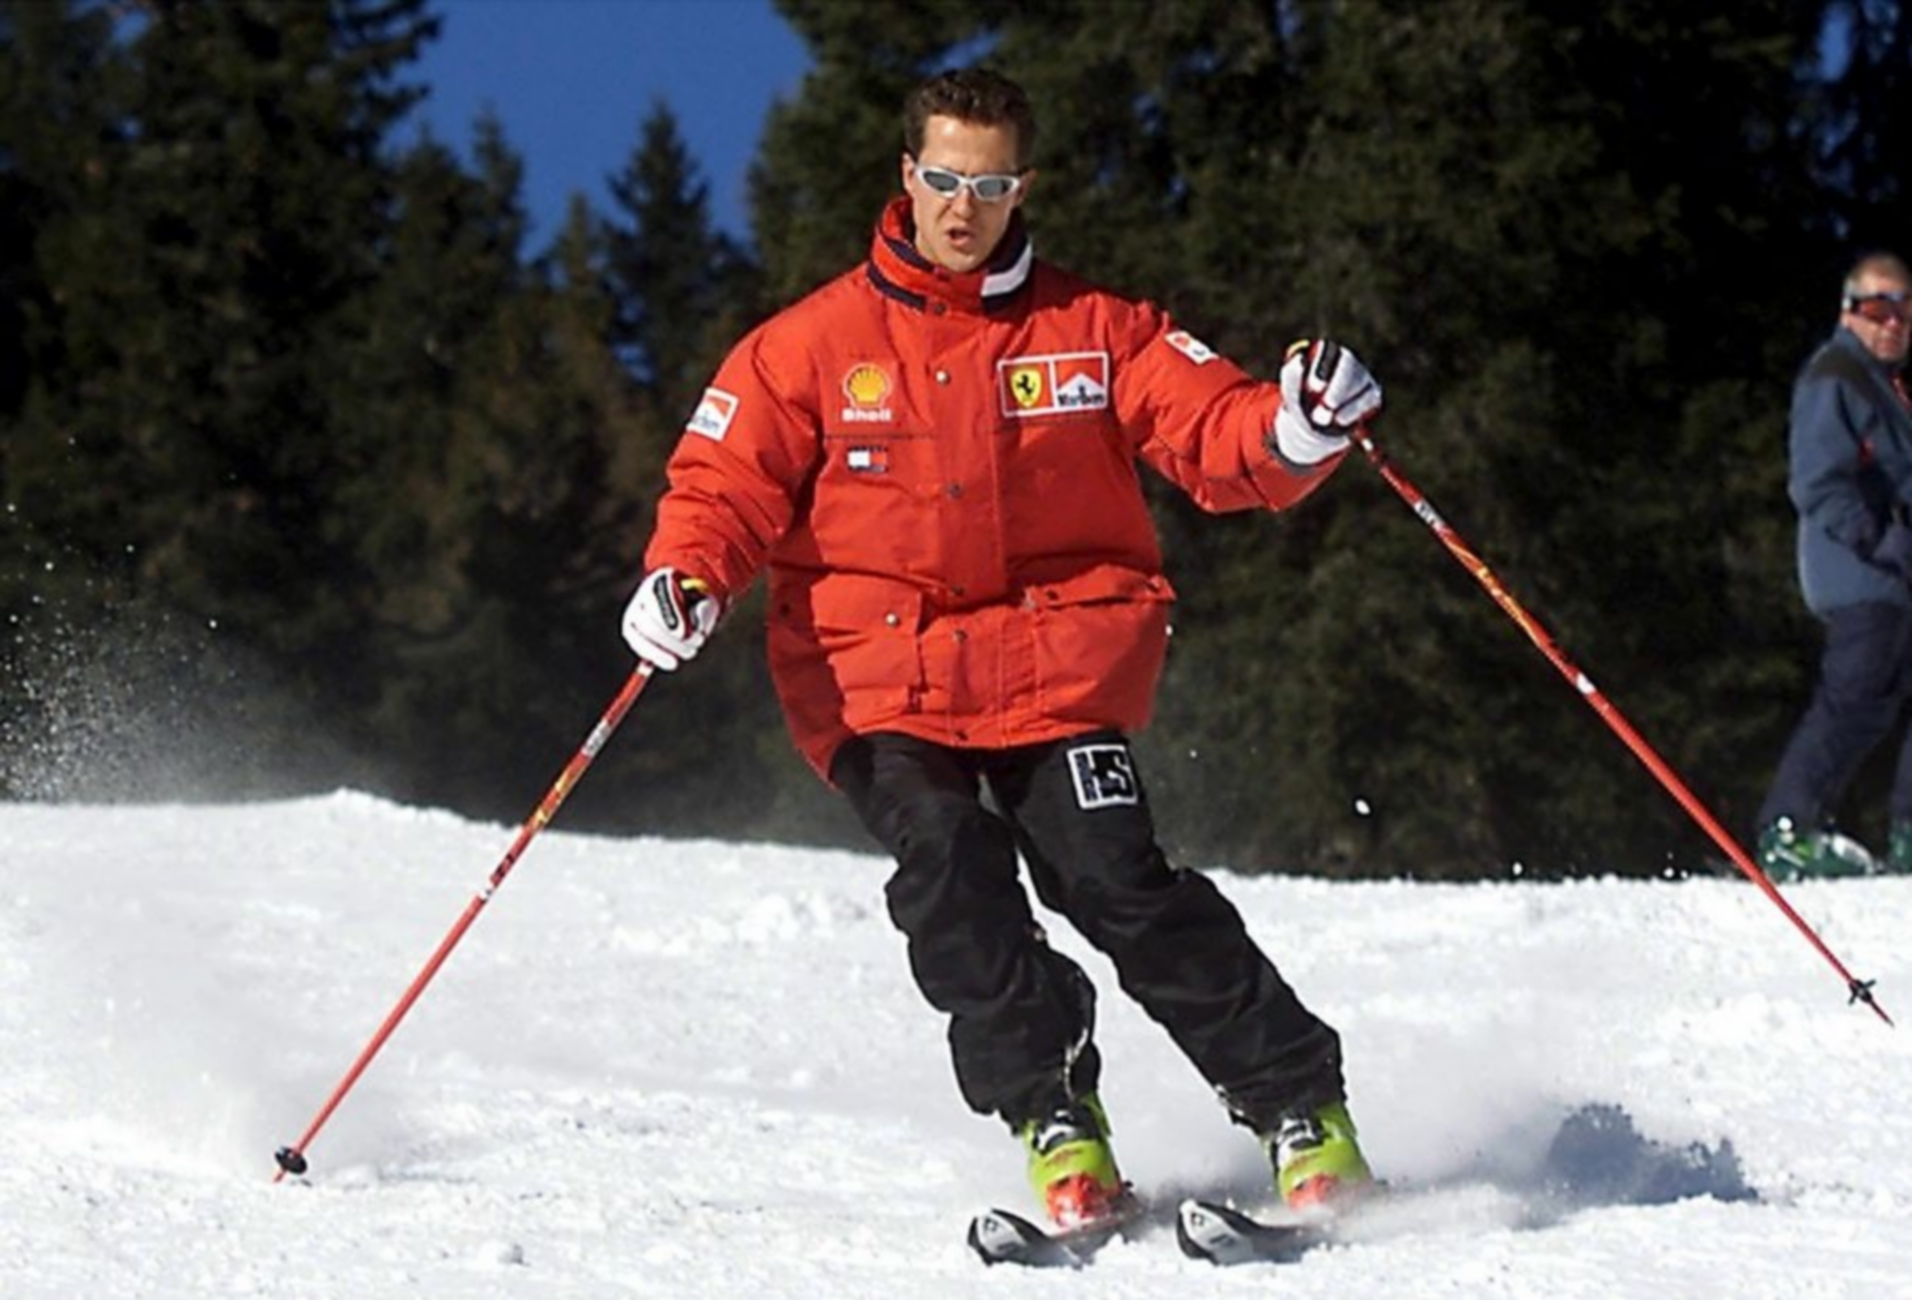 epa04047958 (FILE) A file picture dated 11 January 2000 shows German the Formula One Ferrari driver Michael Schumacher carving a turn while skiing at the Italian resort of Madonna di Campiglio, Italy. According to reports, Michael Schumacher on 30 January 2014 that Sabine Rehm the agent former Formula 1 champion Michael Schumacher has confirmed reports that doctors have started the process of bringing the driver out of his medically induced coma. Schumacher received a head injury sustained in a skiing accident at a French Alps resort 29 December 2013.  EPA/ERCOLE COLOMBO